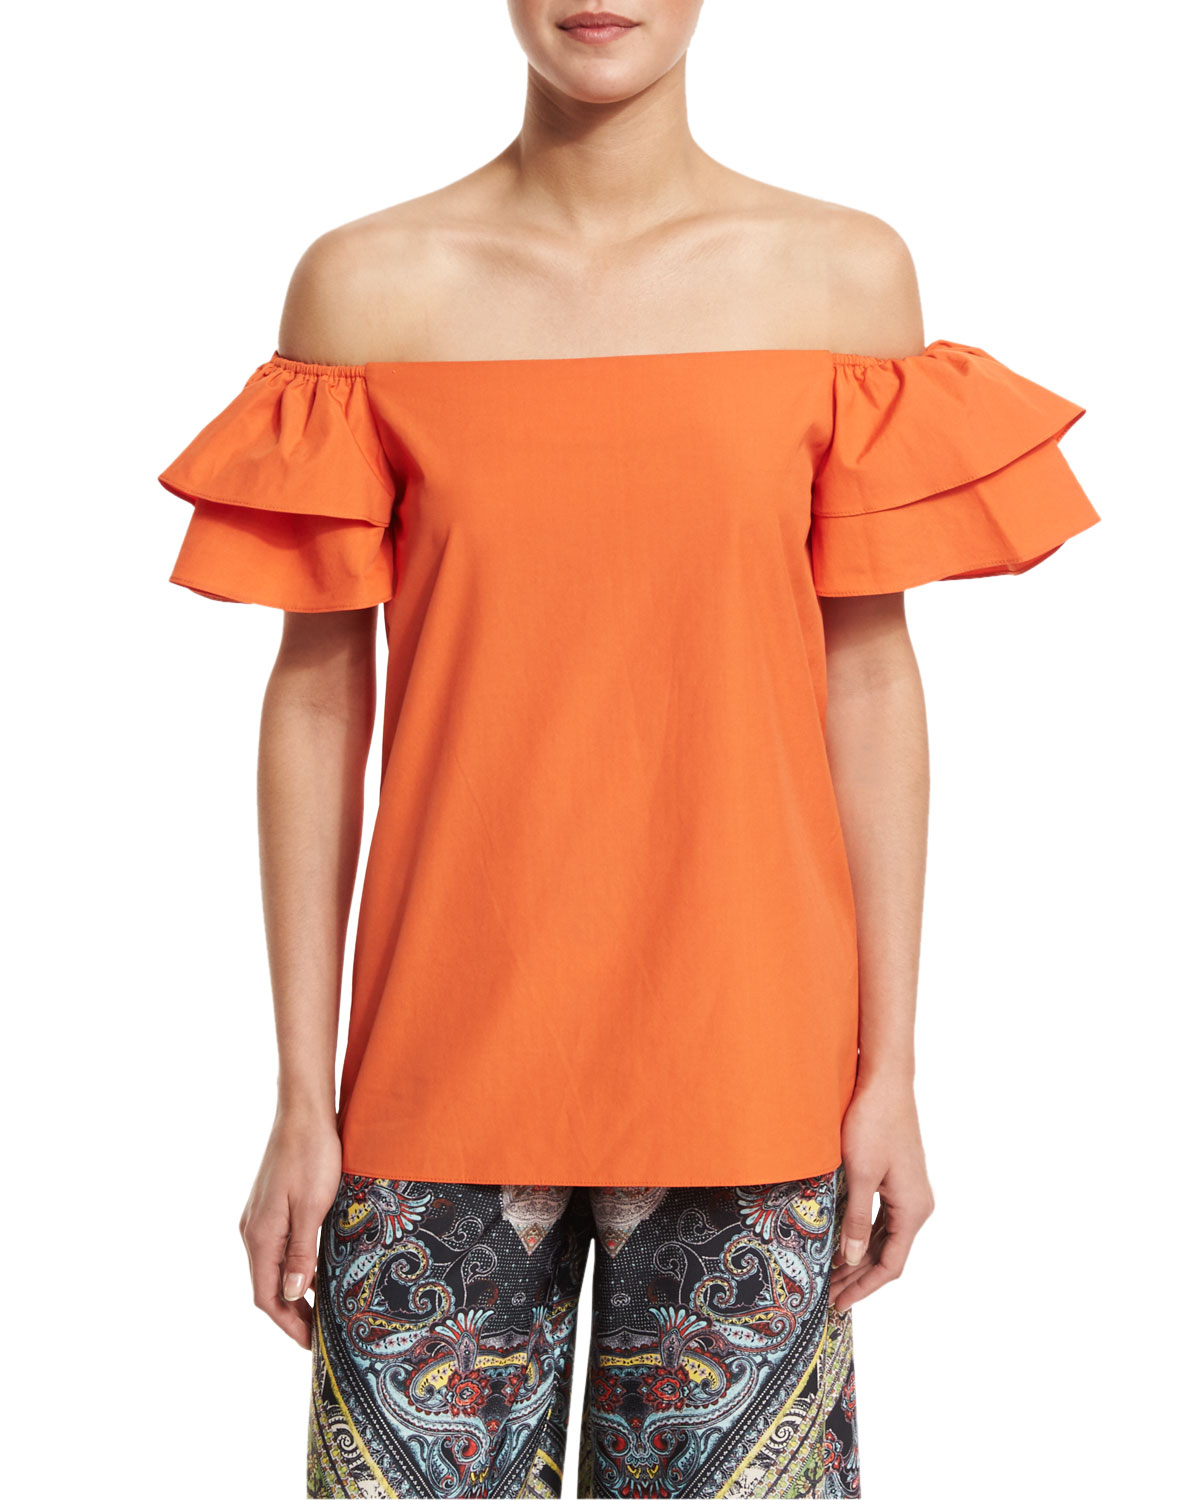 Loryn Off-the-Shoulder Ruffle-Sleeve Blouse, Orange, Size: L - Alice + Olivia